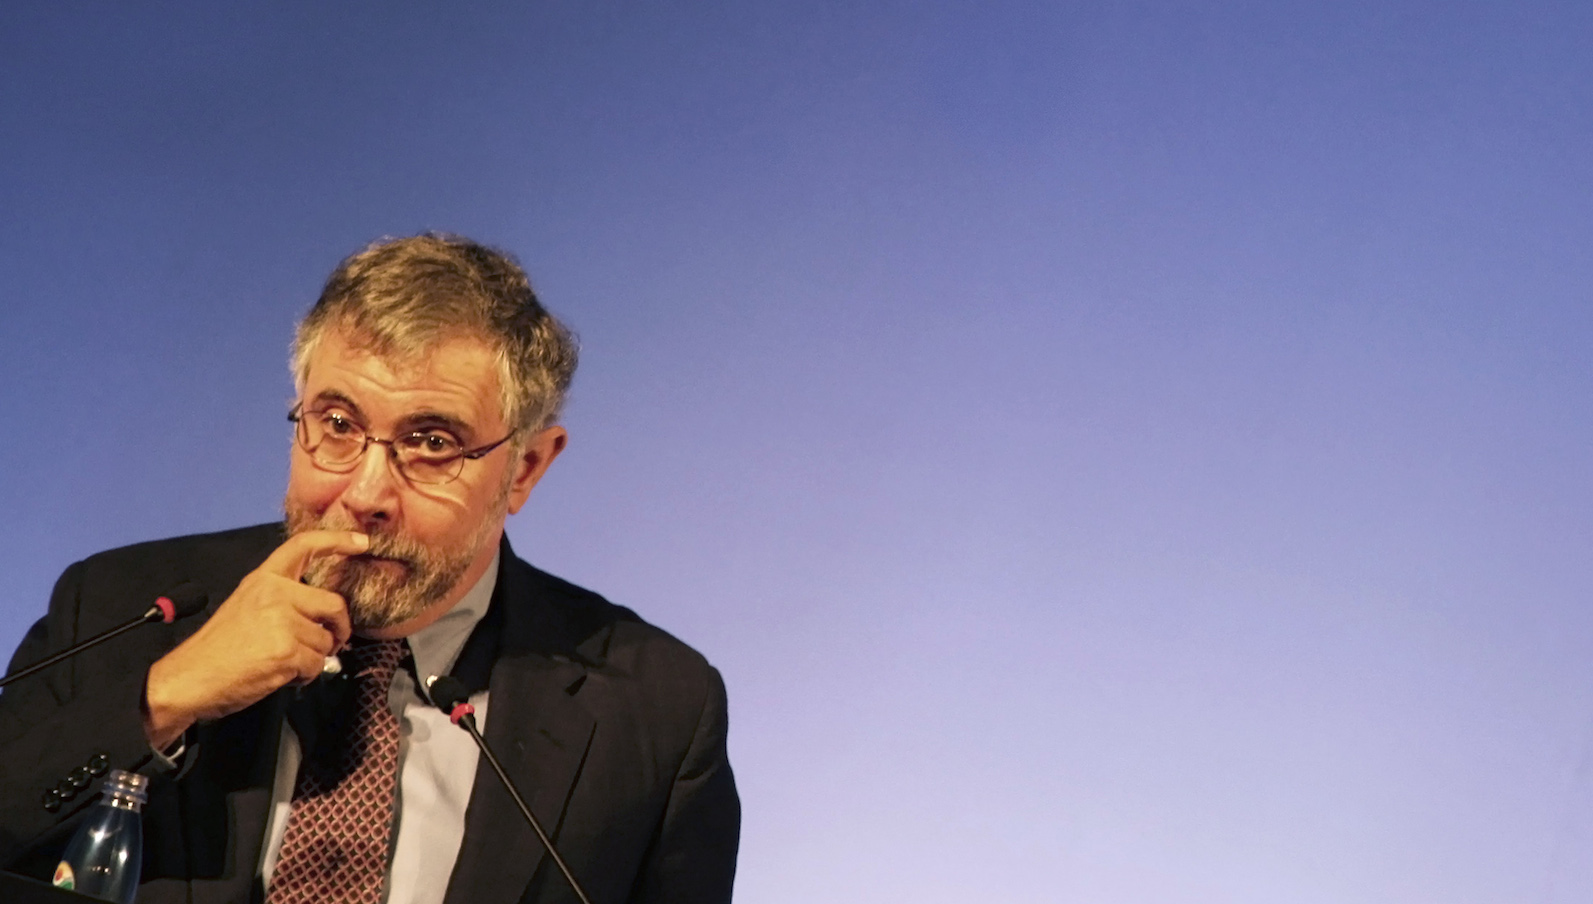 Nobel Prize winning economist Krugman talks to the audience during a conference about the current global crisis, in Sao Paulo